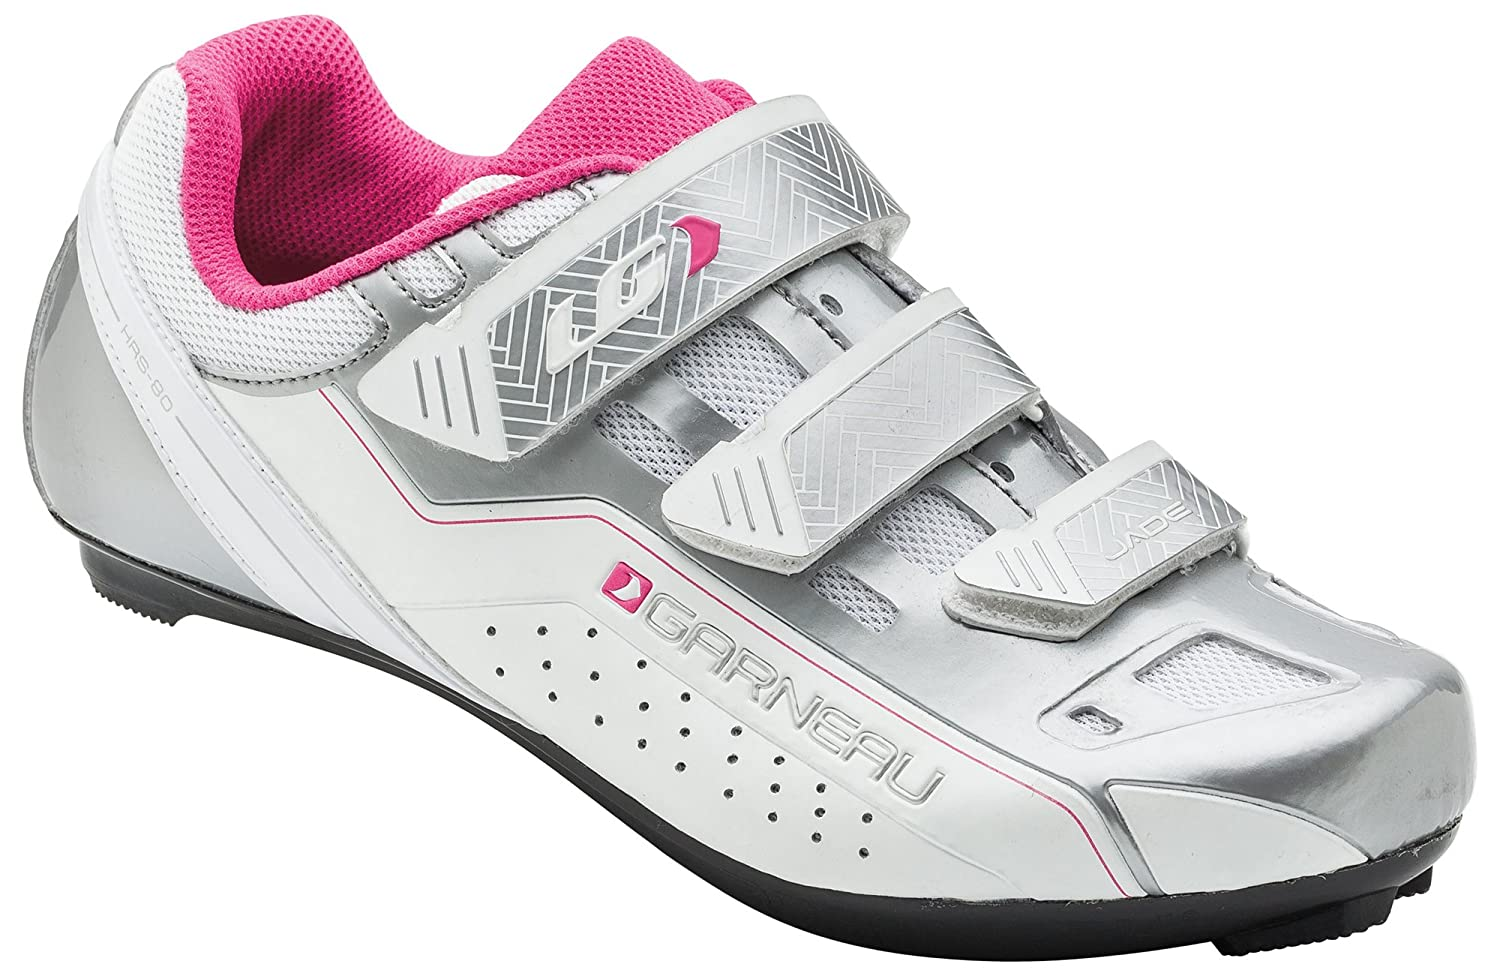 Louis Garneau Women's Jade Bike Shoes B012SKVG7U 42|Drizzle